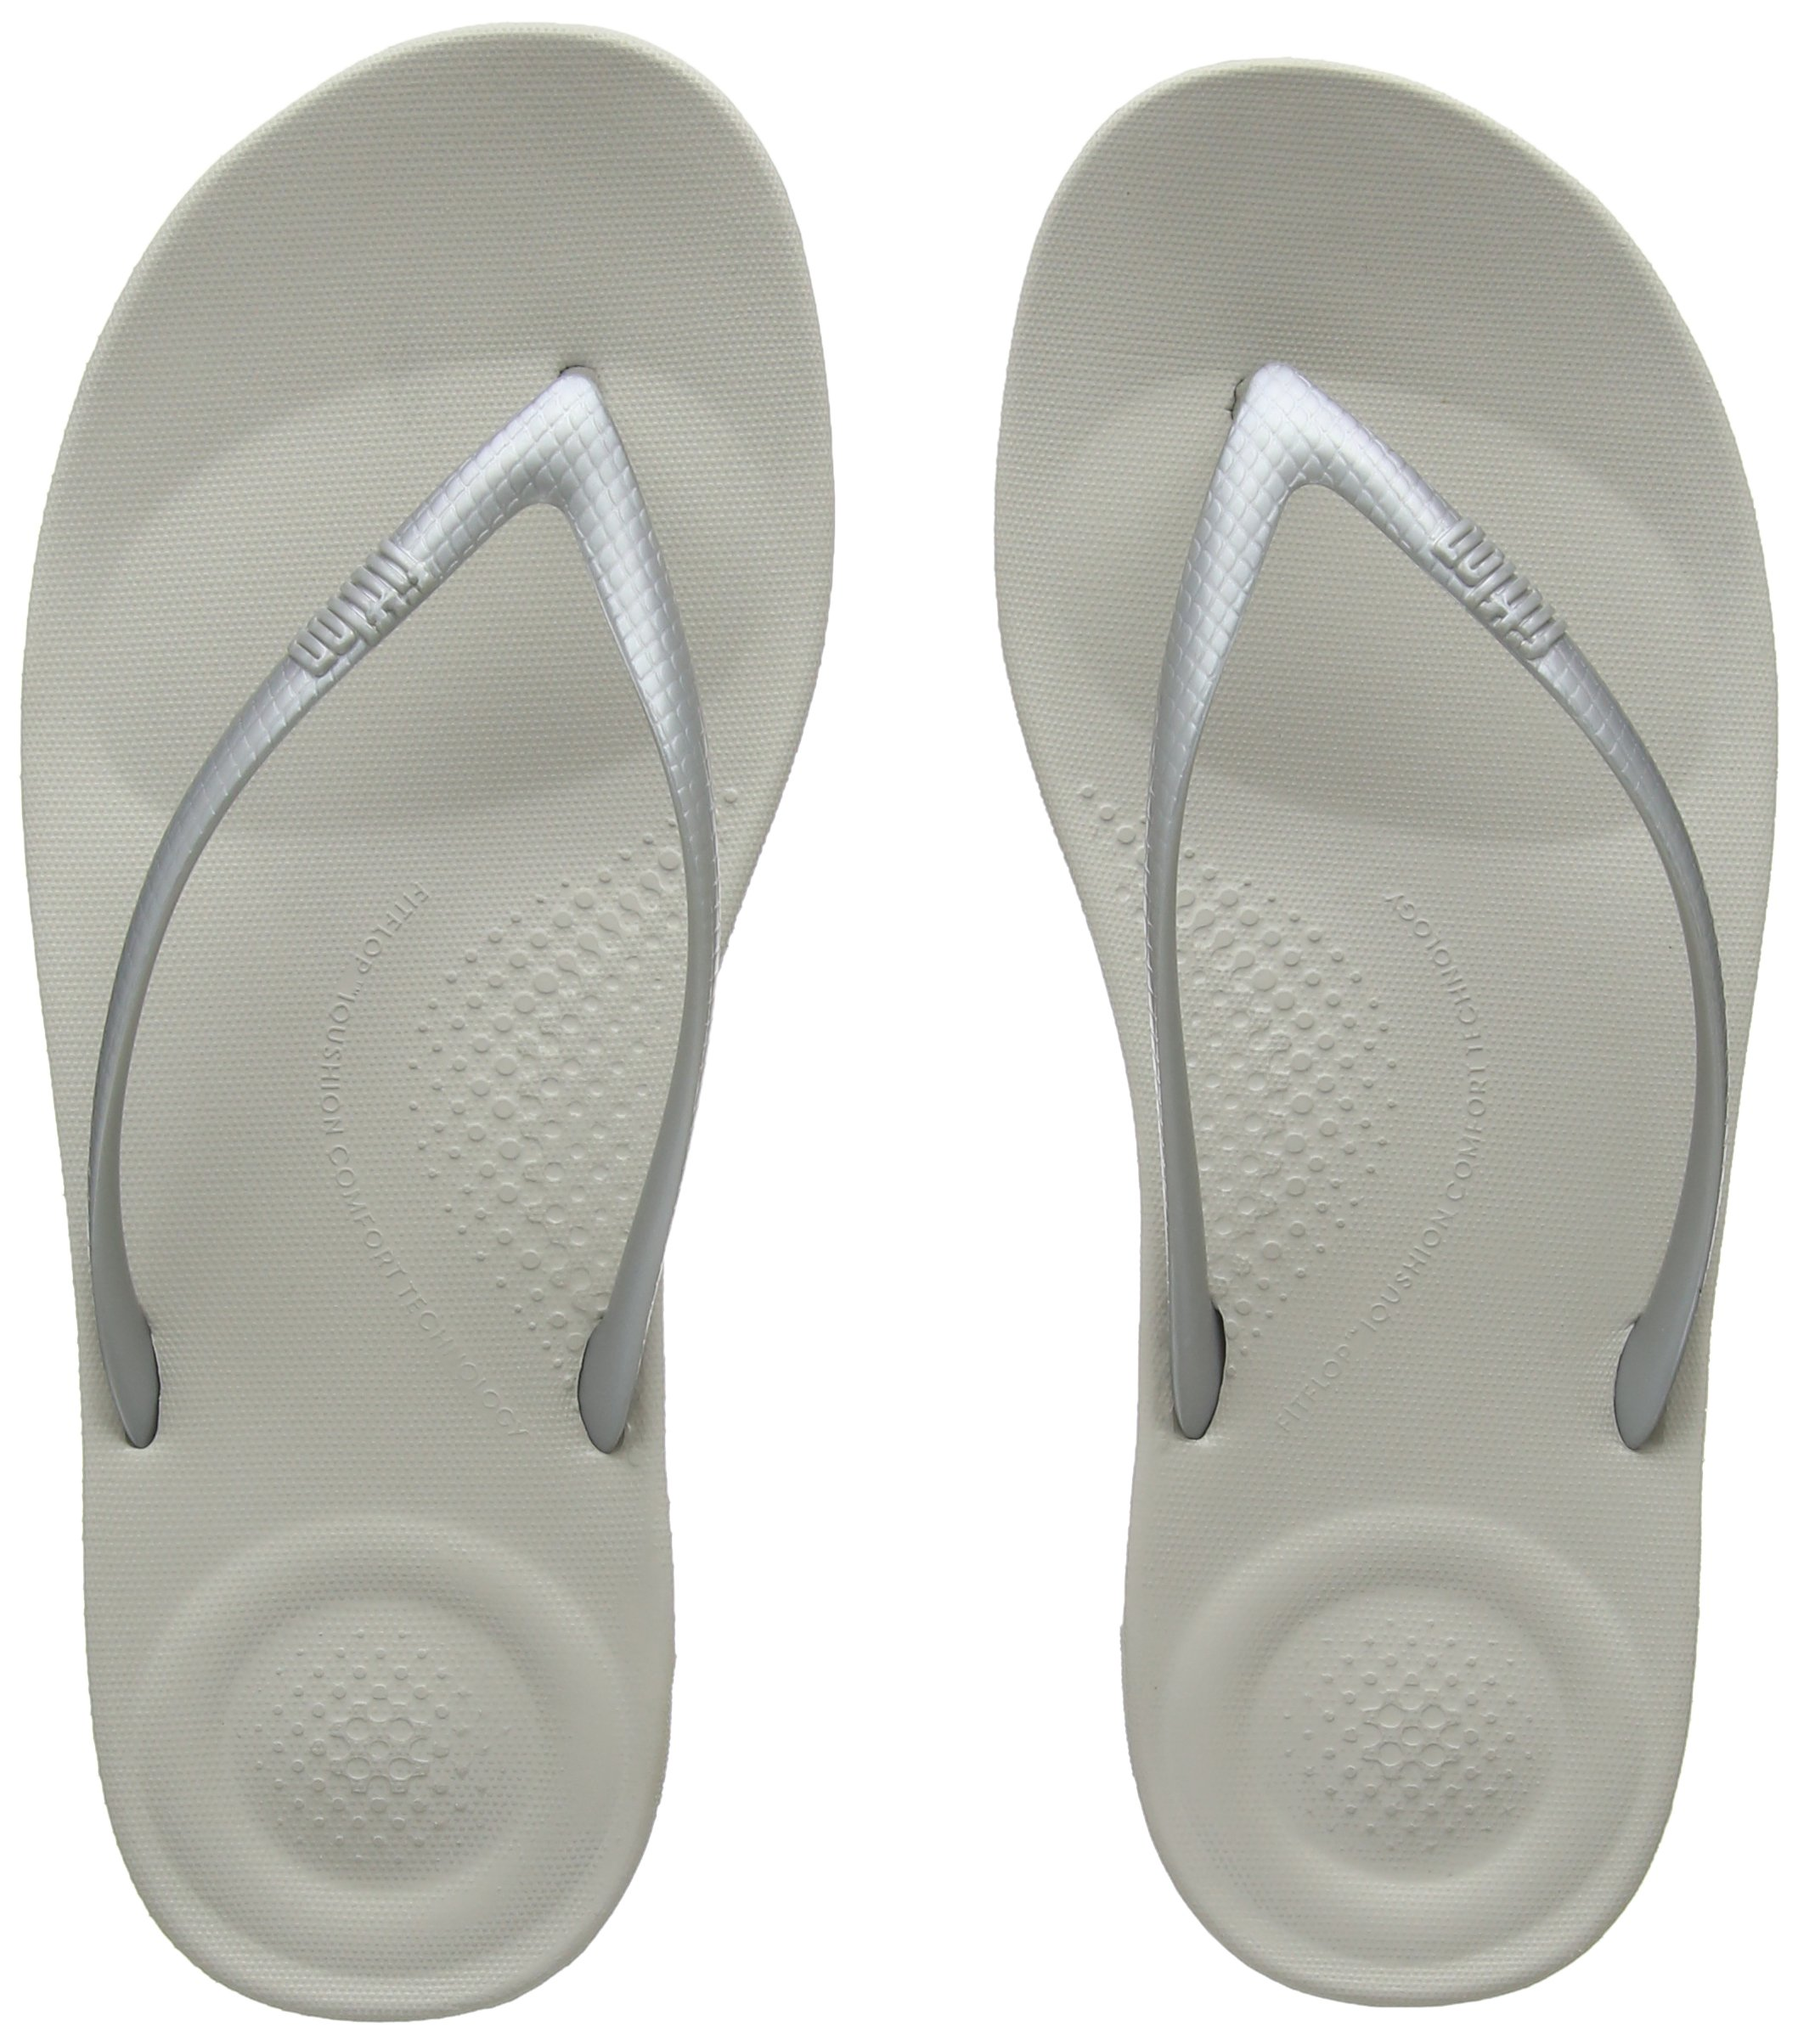 3a7505612f781 Galleon - FitFlop Womens Iqushion Ergonomic Flip Flop Shoes